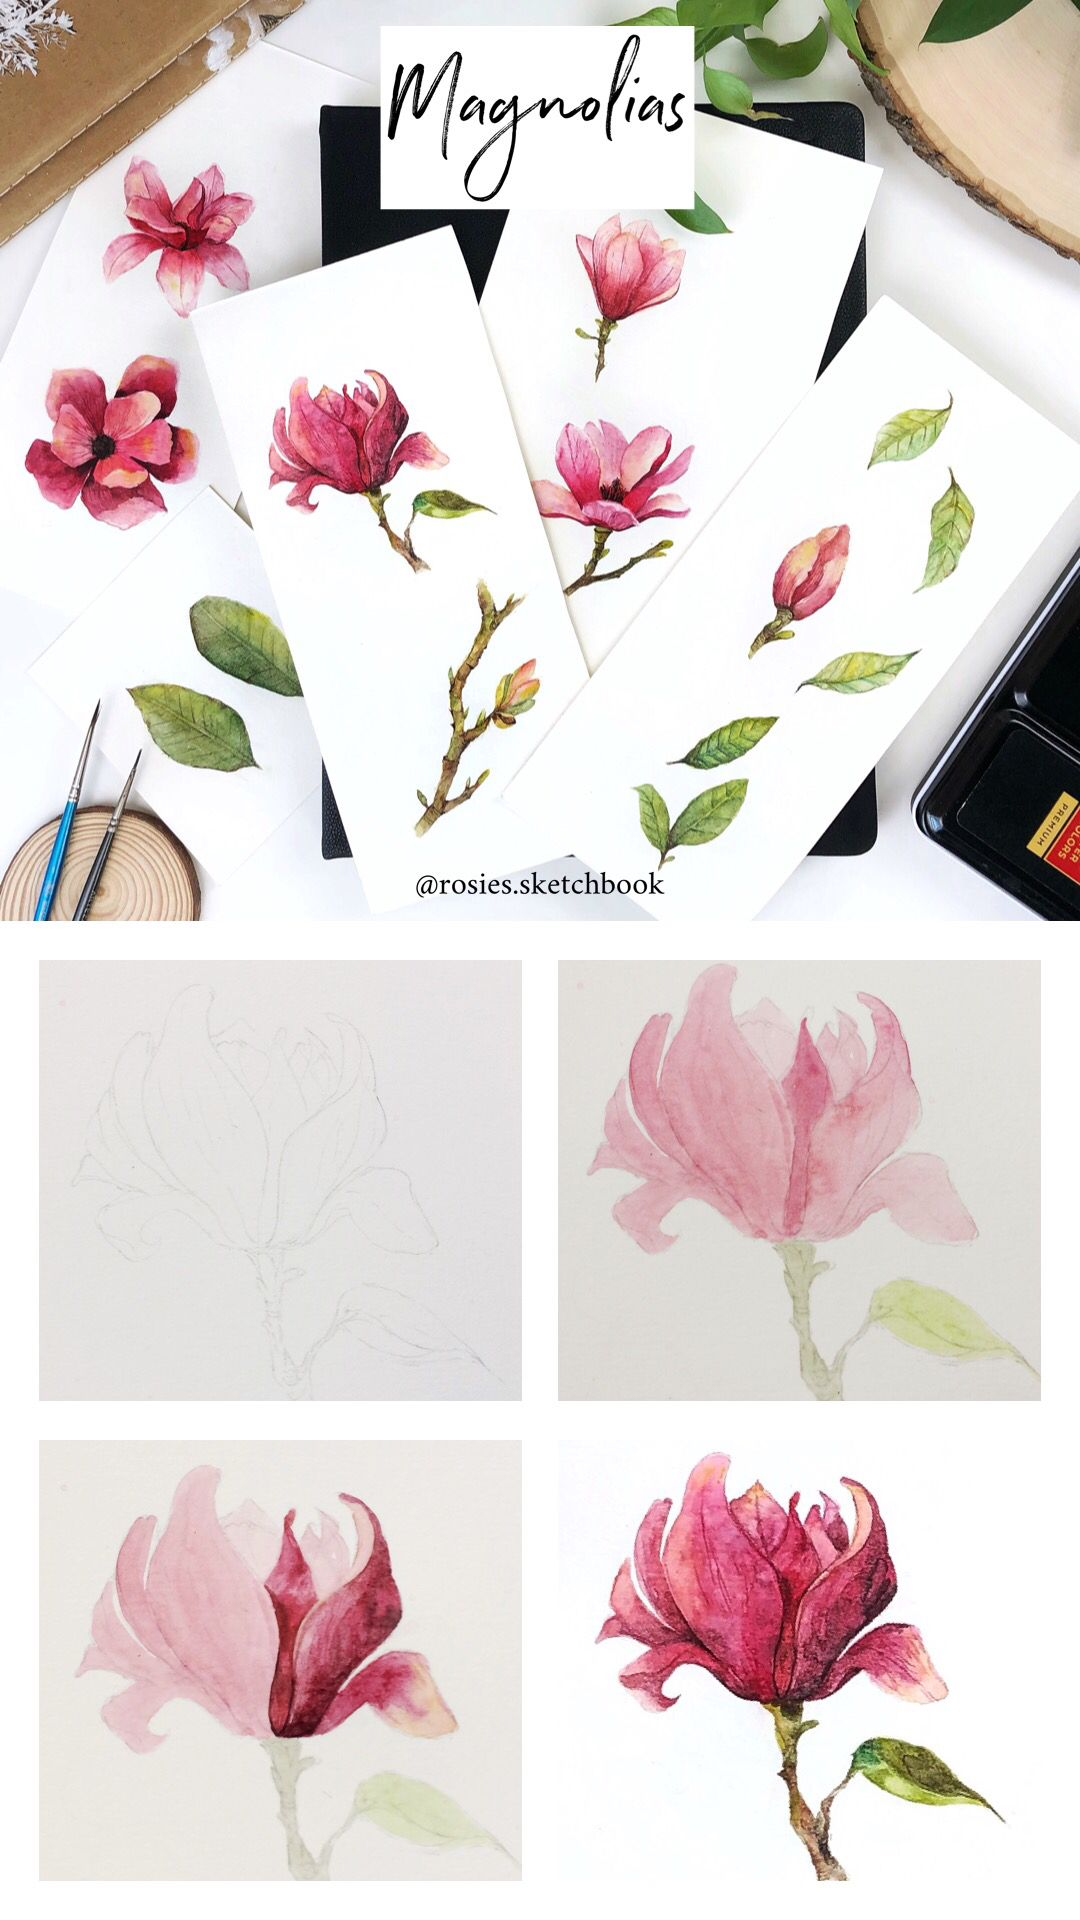 Mini Magnolia Flower Tutorial With Step By Step Process Photos